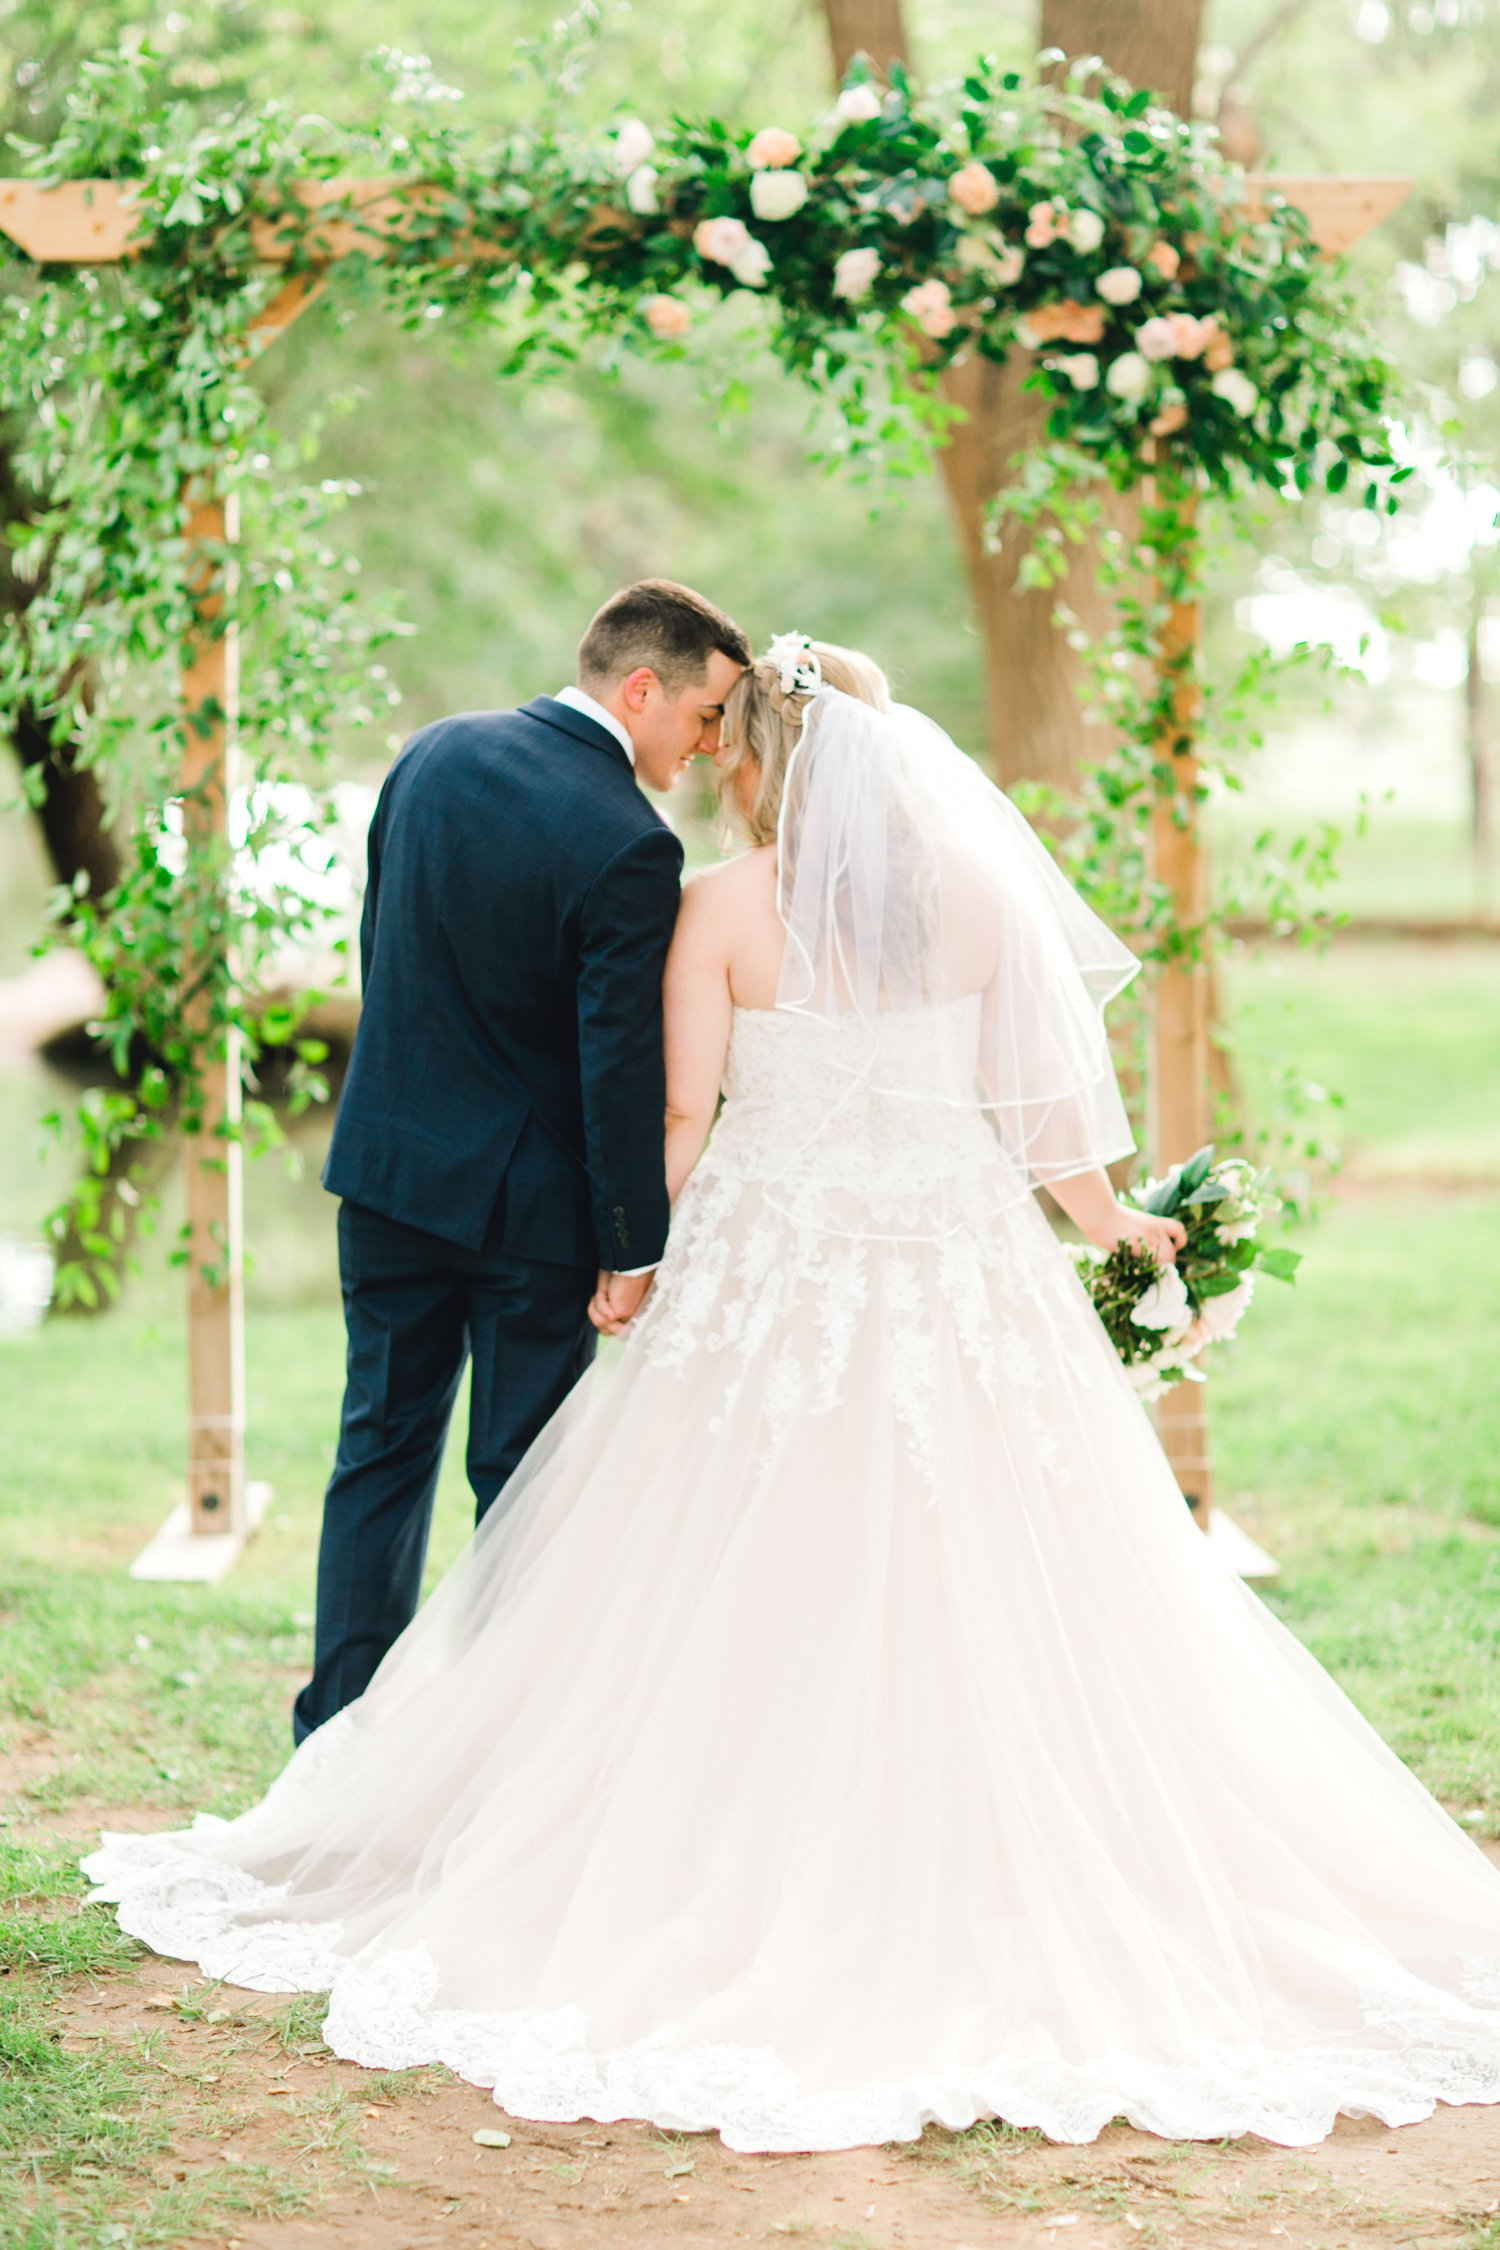 SARAH_AND_GEOFFREY_SHARP_SPIRIT_RANCH_WEDDING_ALLEEJ_LUBBOCK_TX_0097.jpg